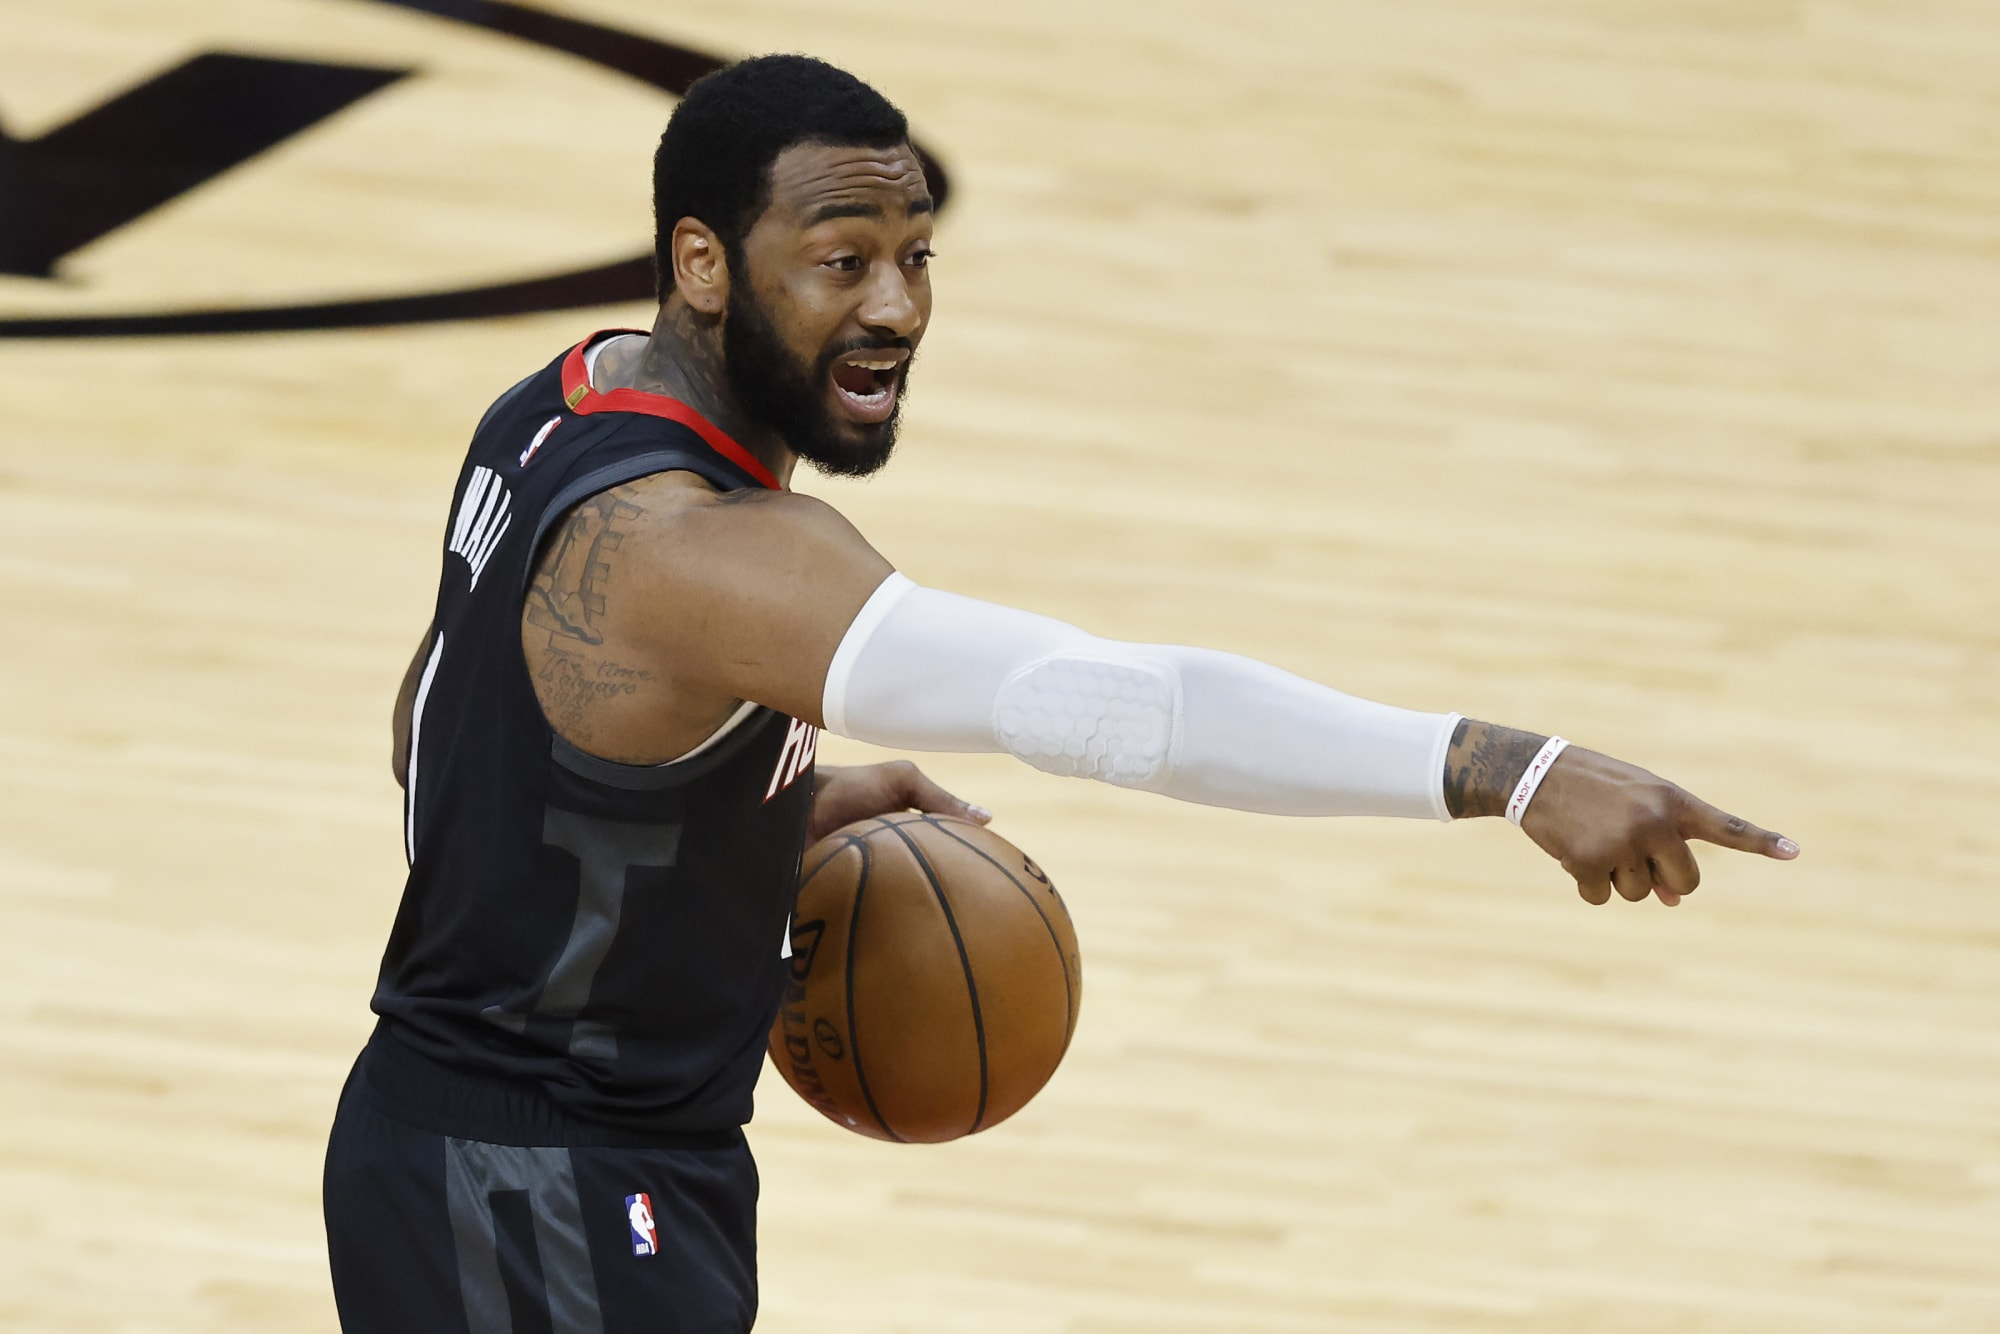 Should the Toronto Raptors pursue John Wall if he gets bought out?